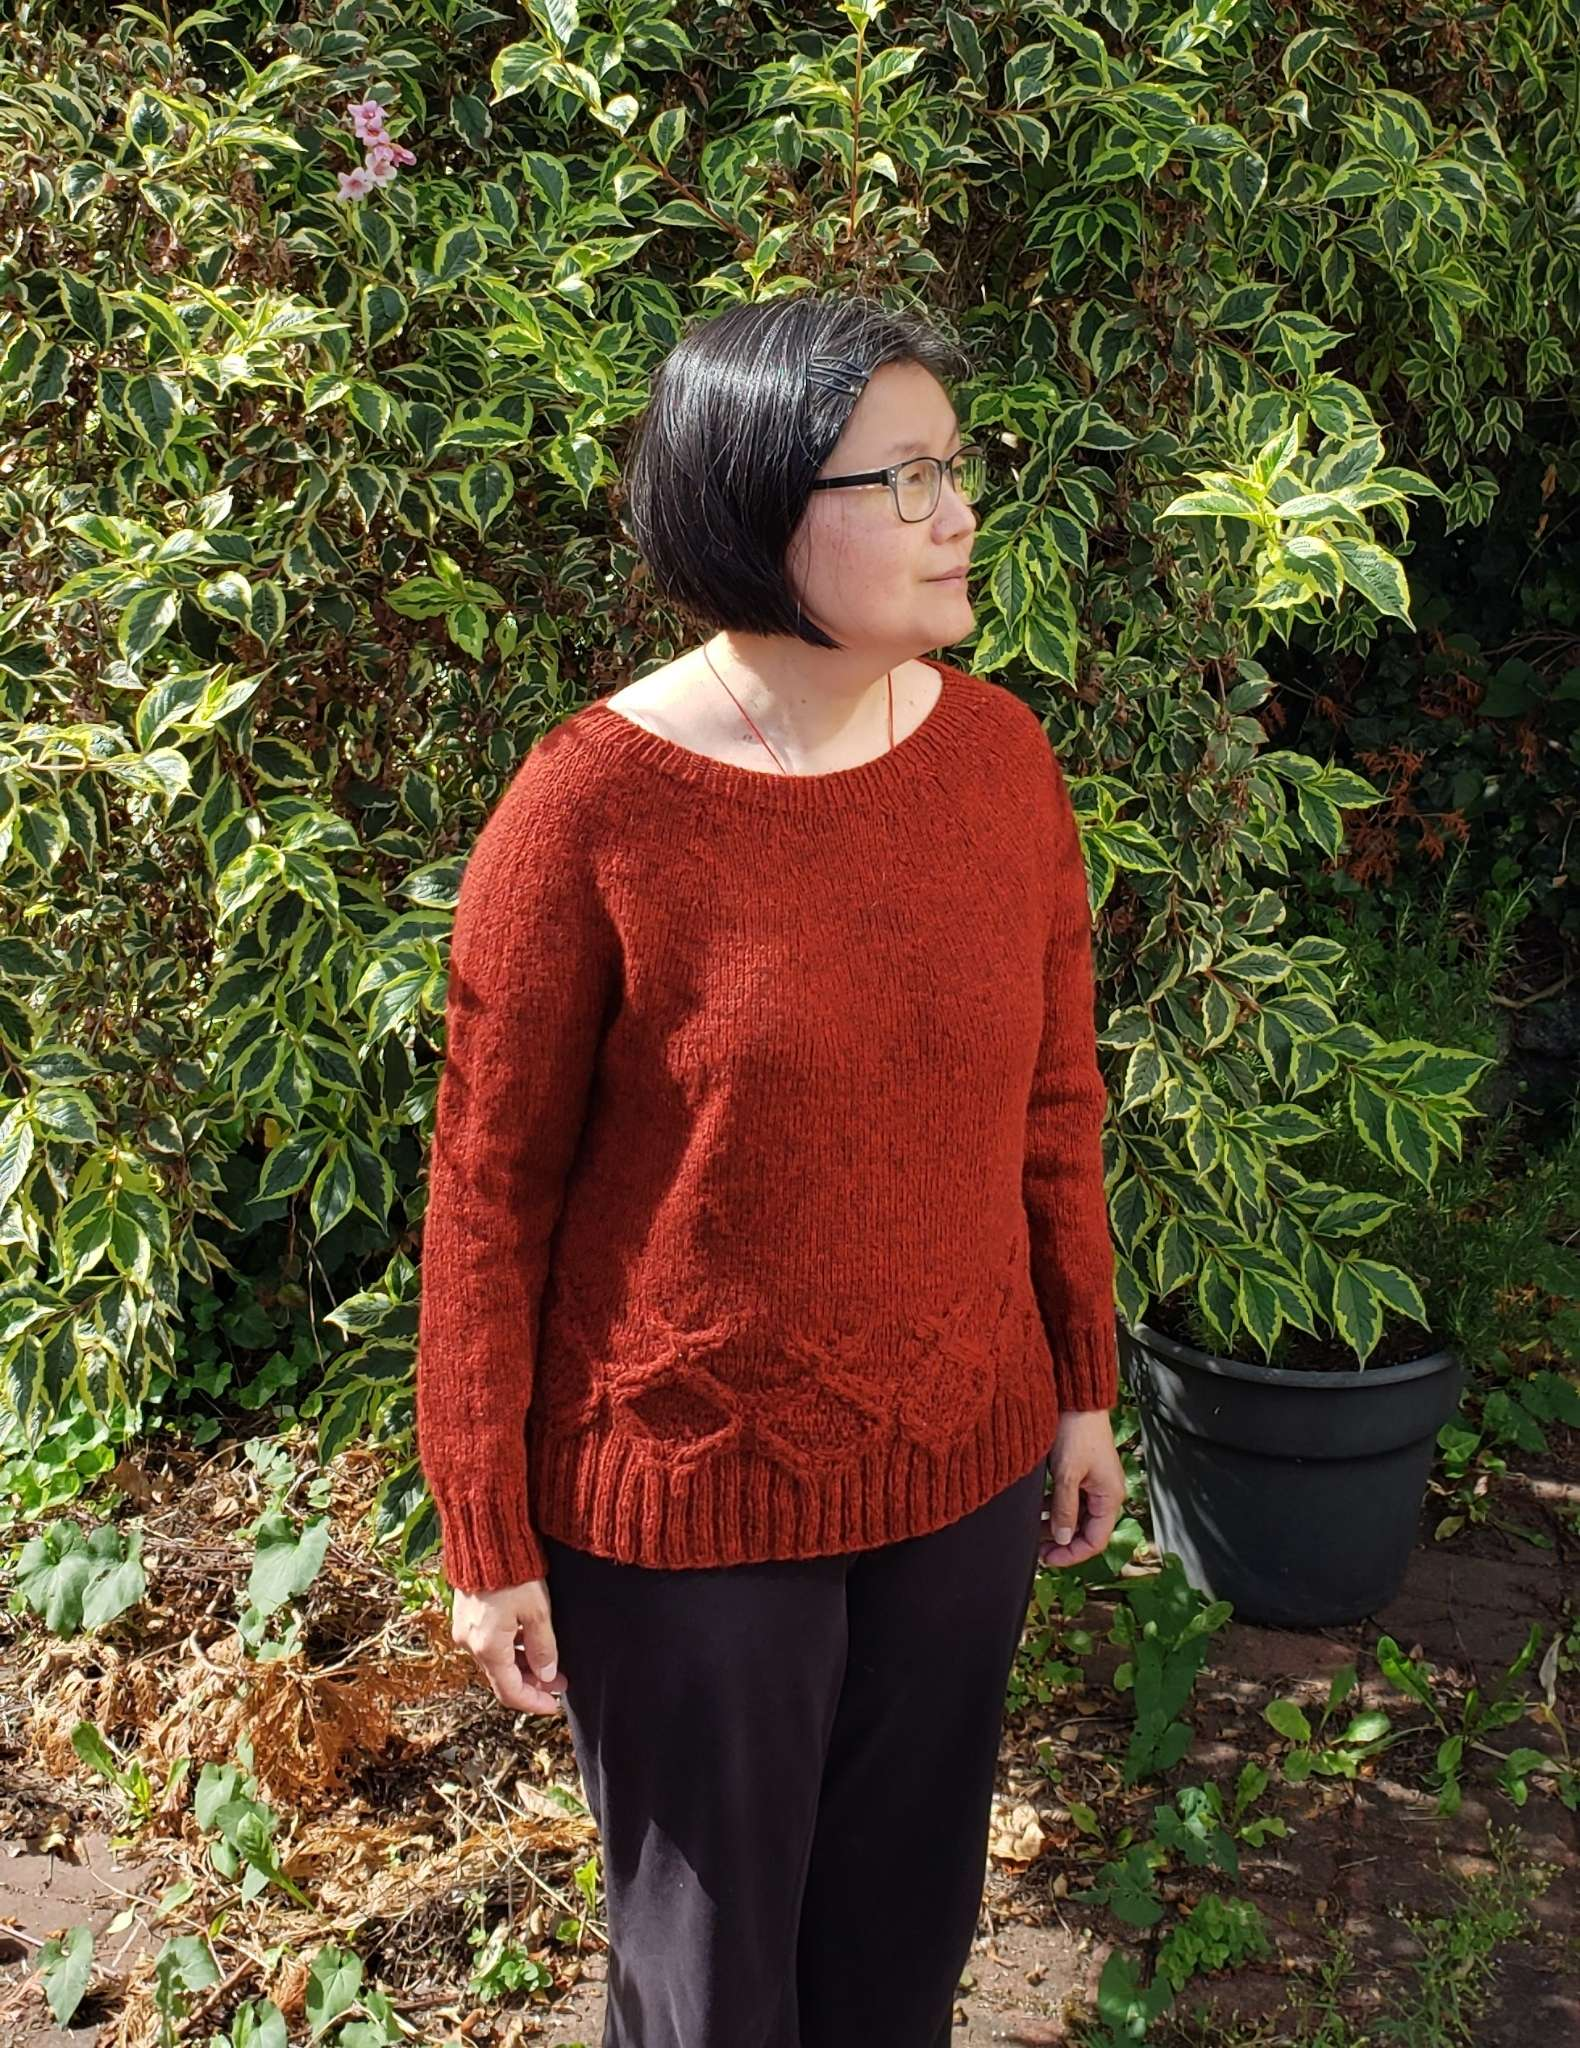 a model with dark hair wearing an orange cabled sweater stands in front of a bush, looking to the side